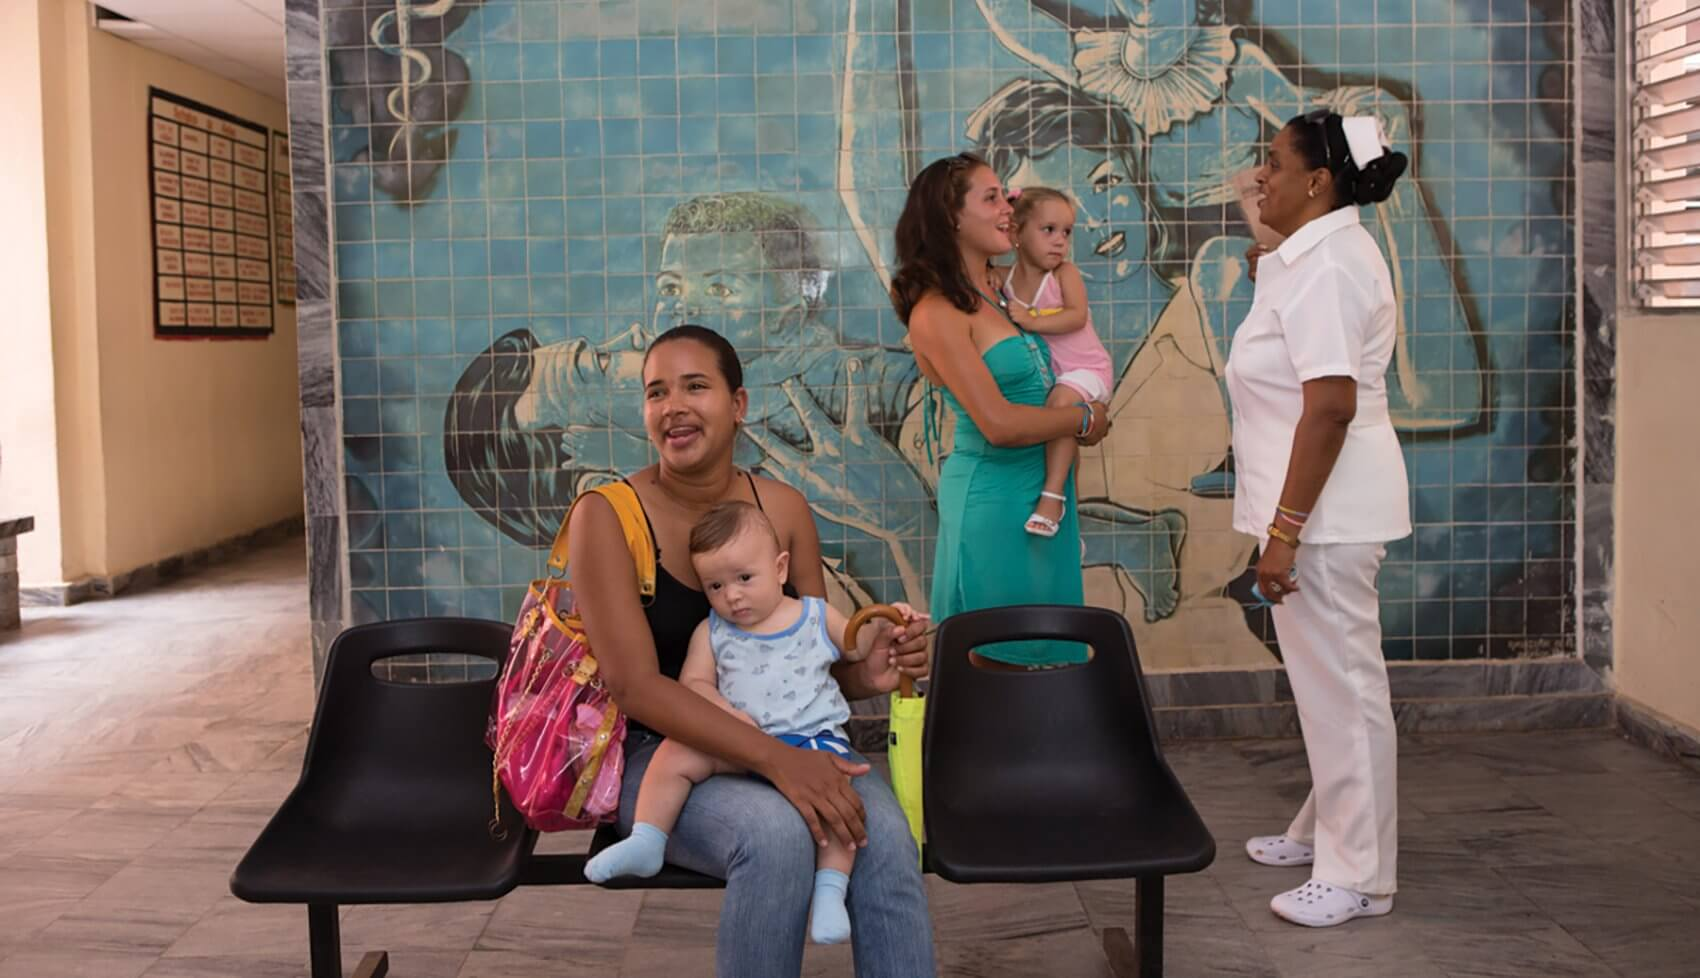 Patients in the waiting room of a Cuban health clinic. Credit: © Magnum Photographer Cristina Garcia Rodero